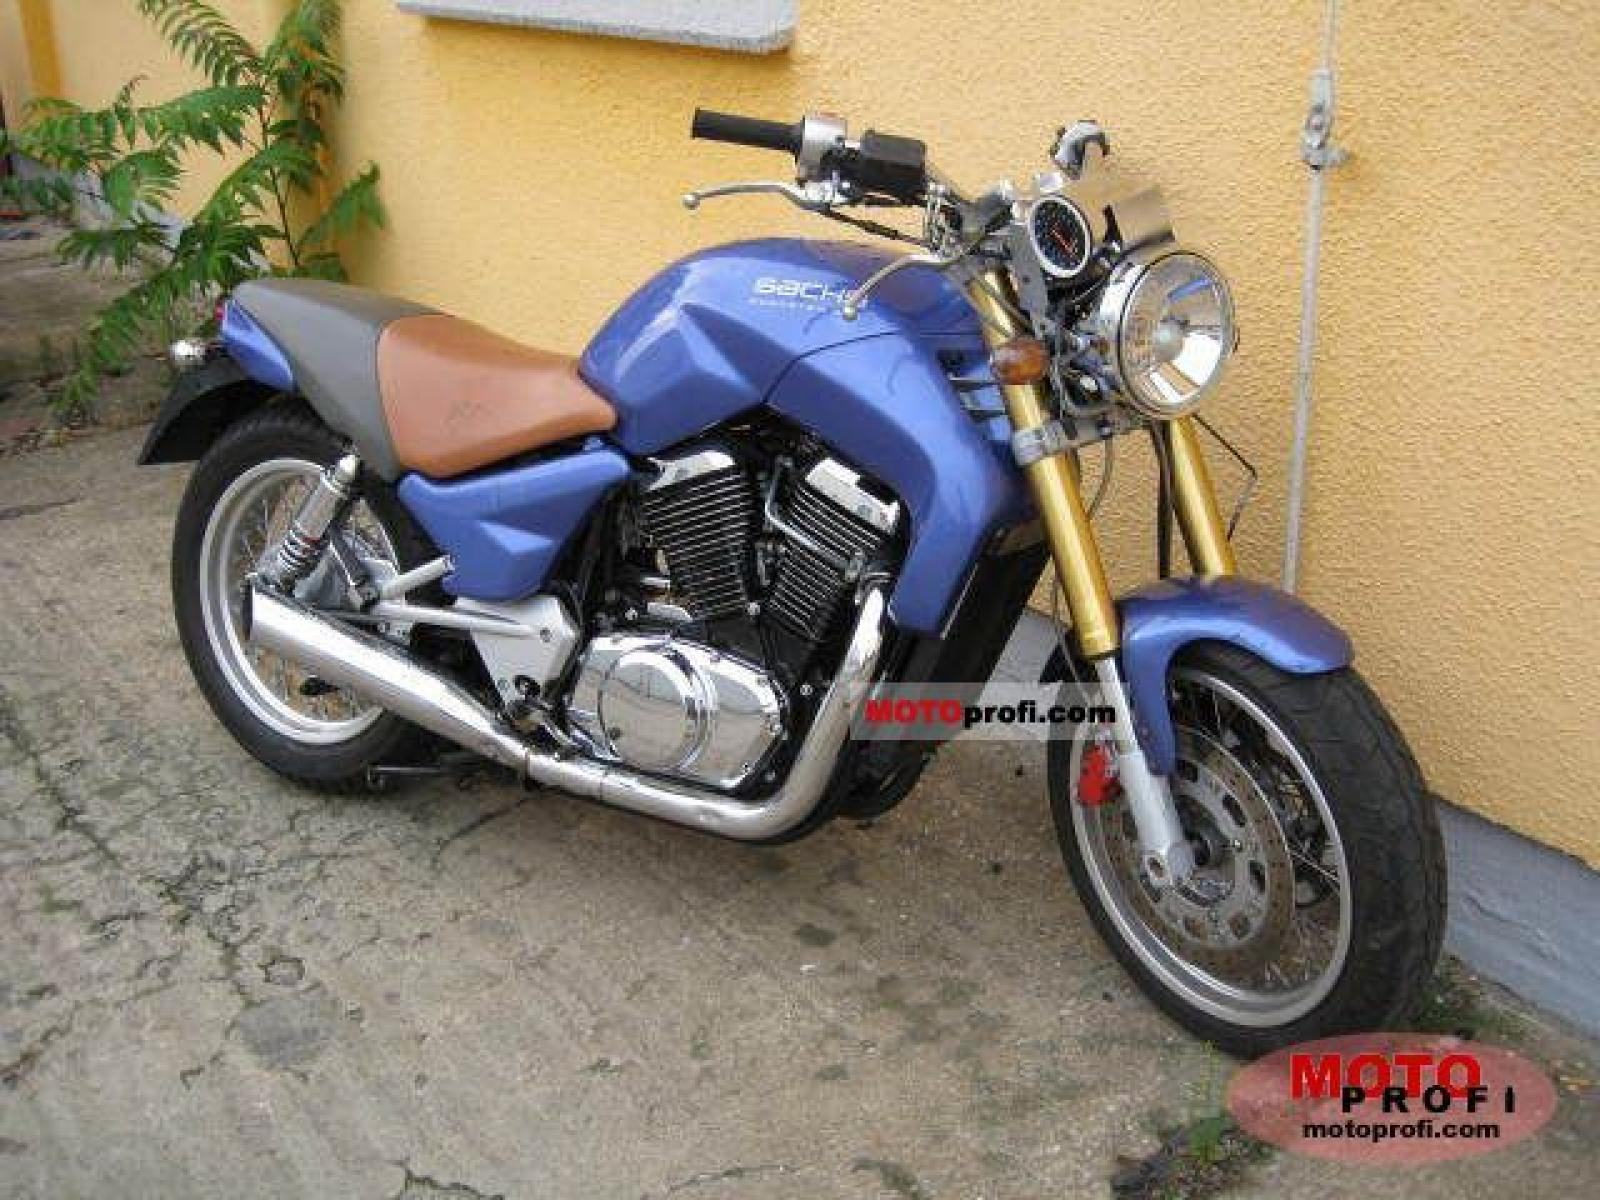 Sachs Roadster 650 2003 images #124104